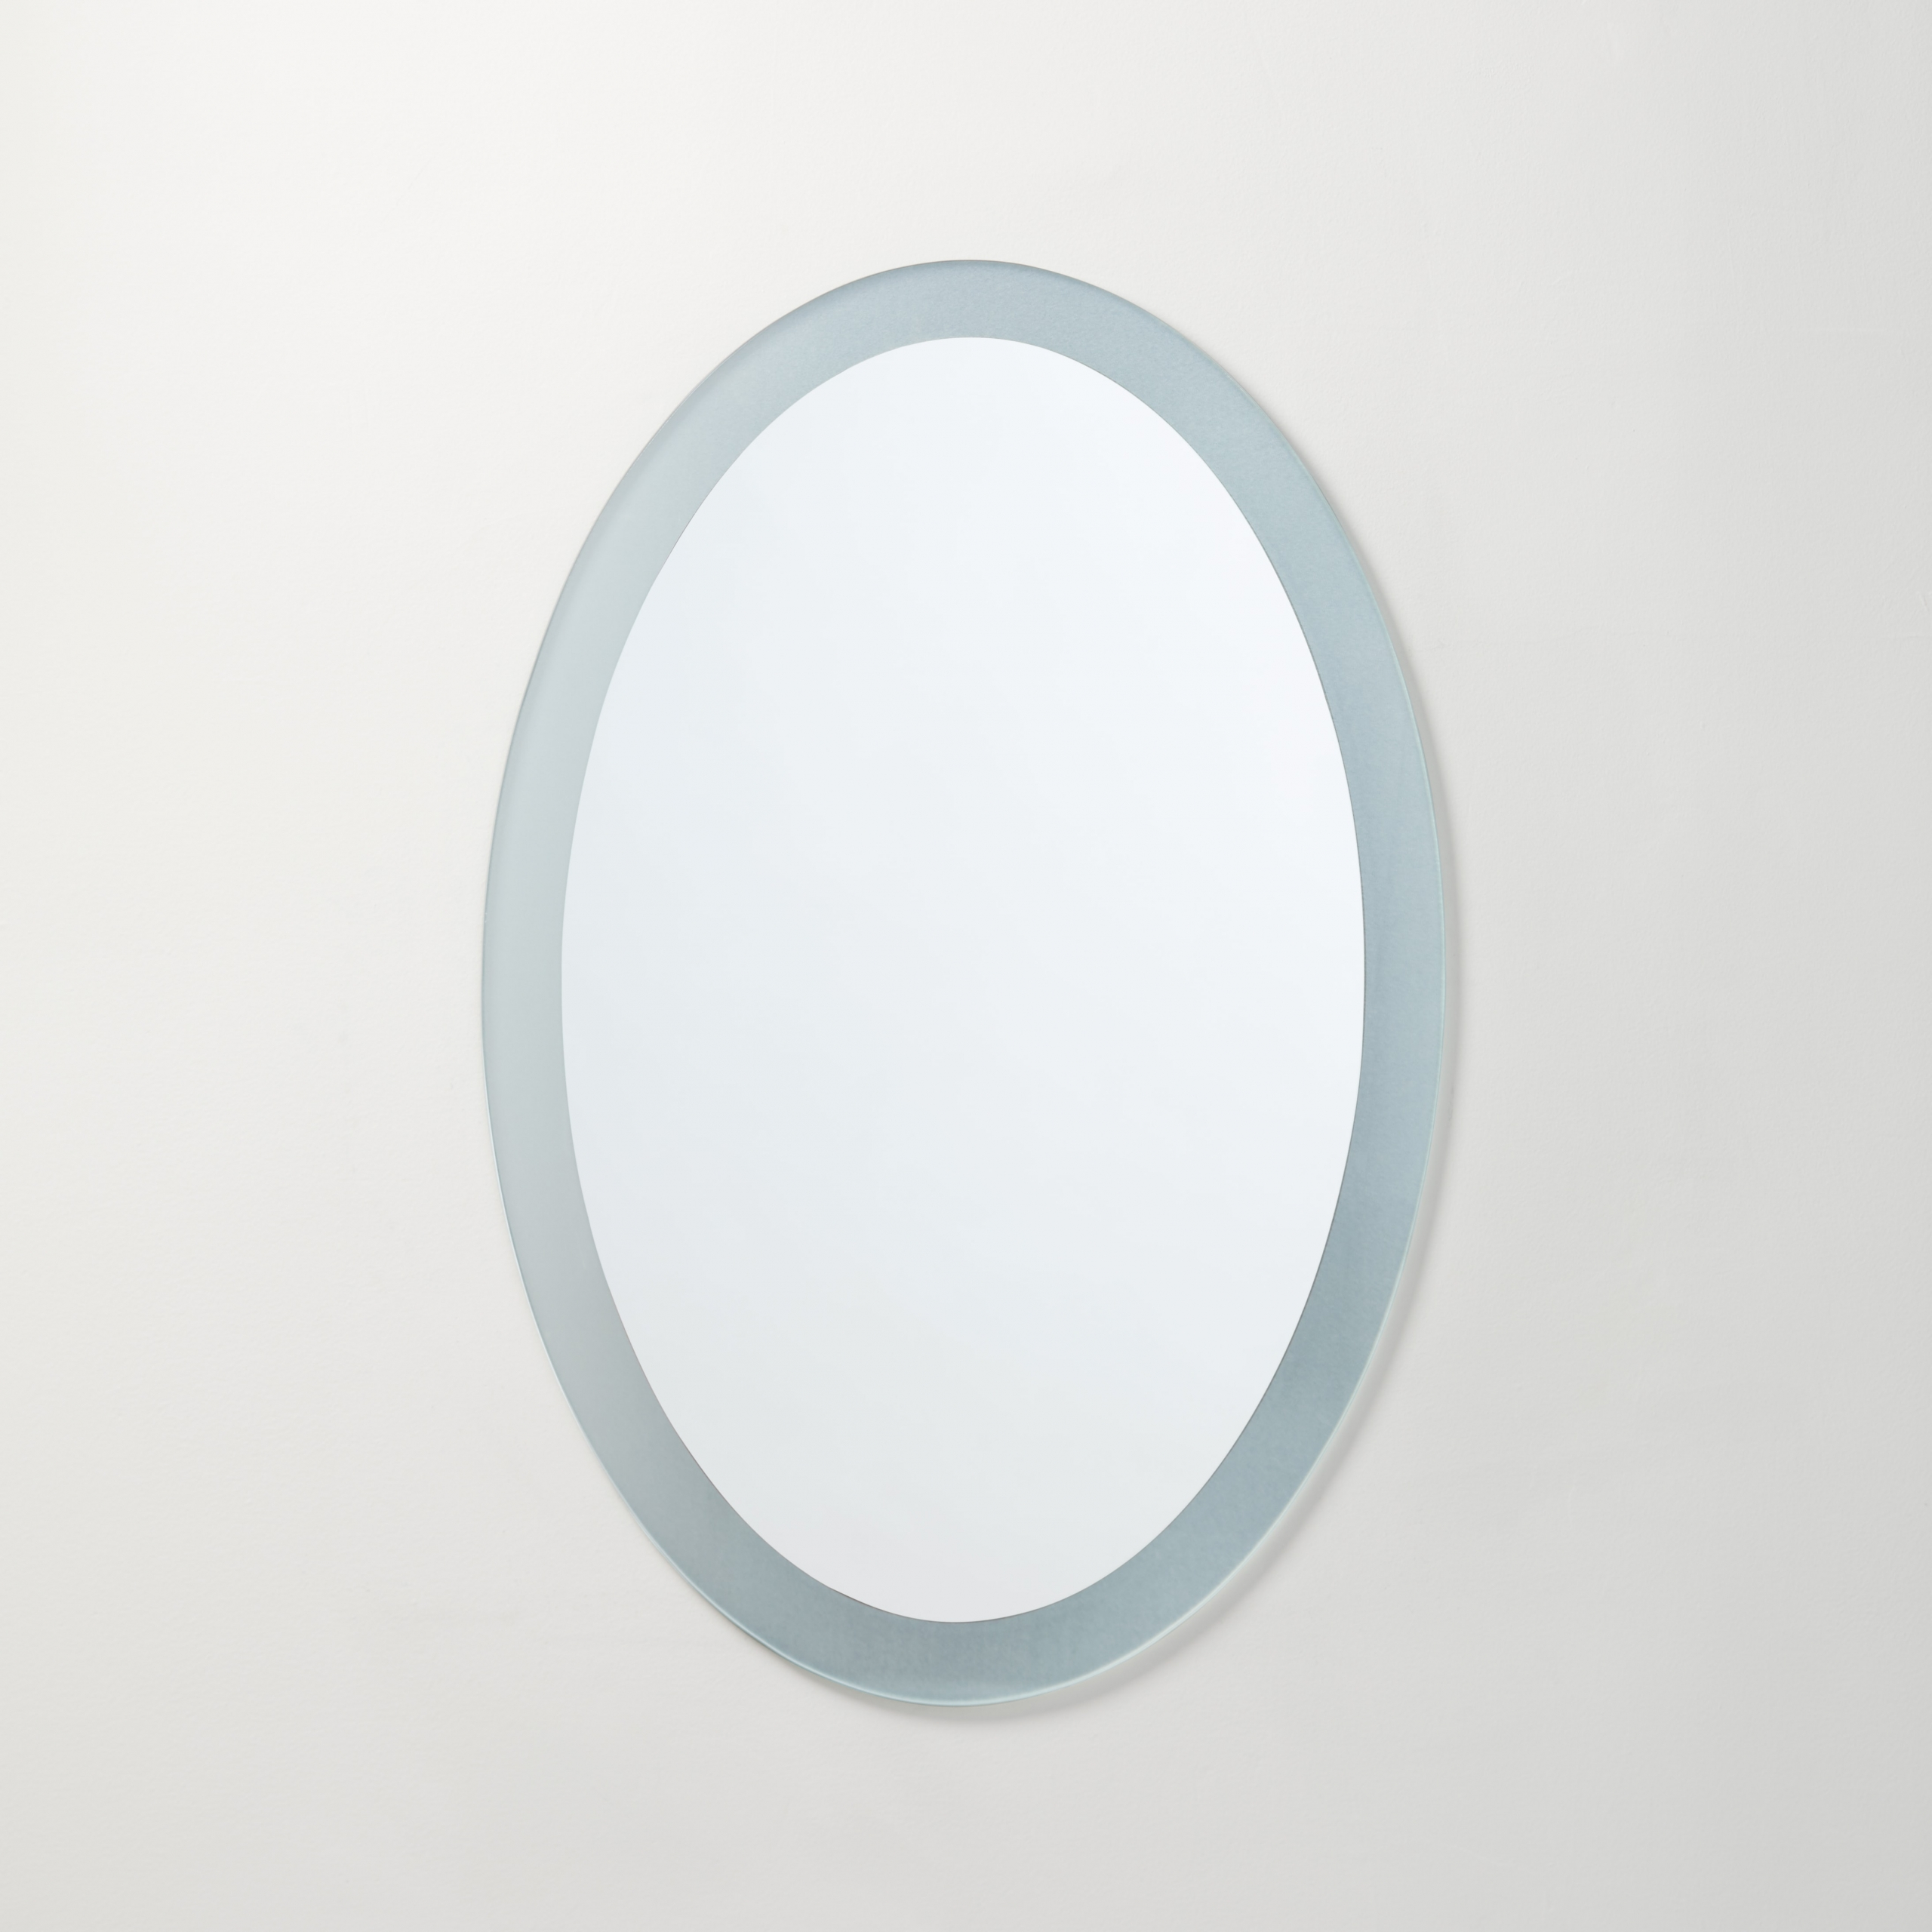 Frosted border frameless mirror hanging on beige wall